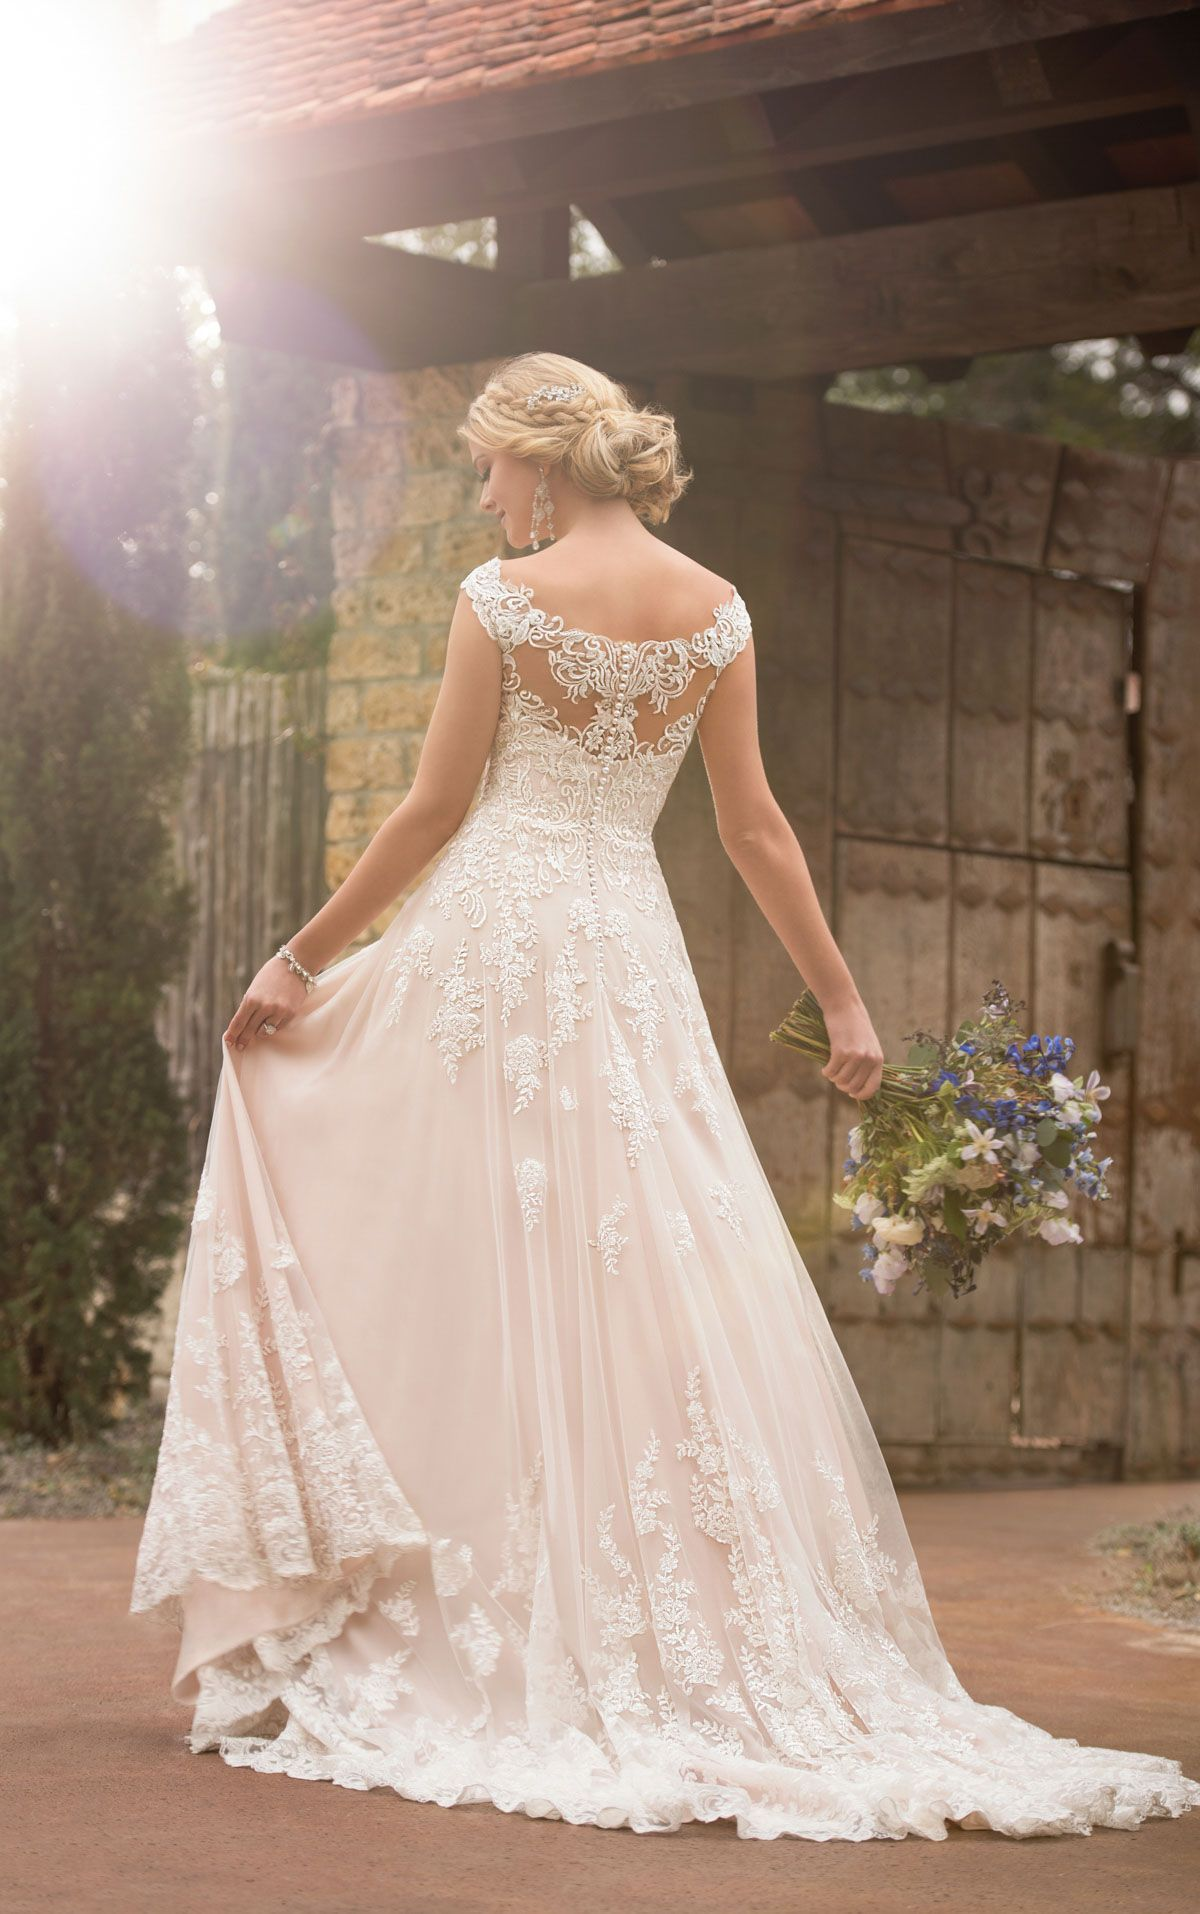 Essence Of Australia Wedding Dress Https Trib Al Sr65qgb